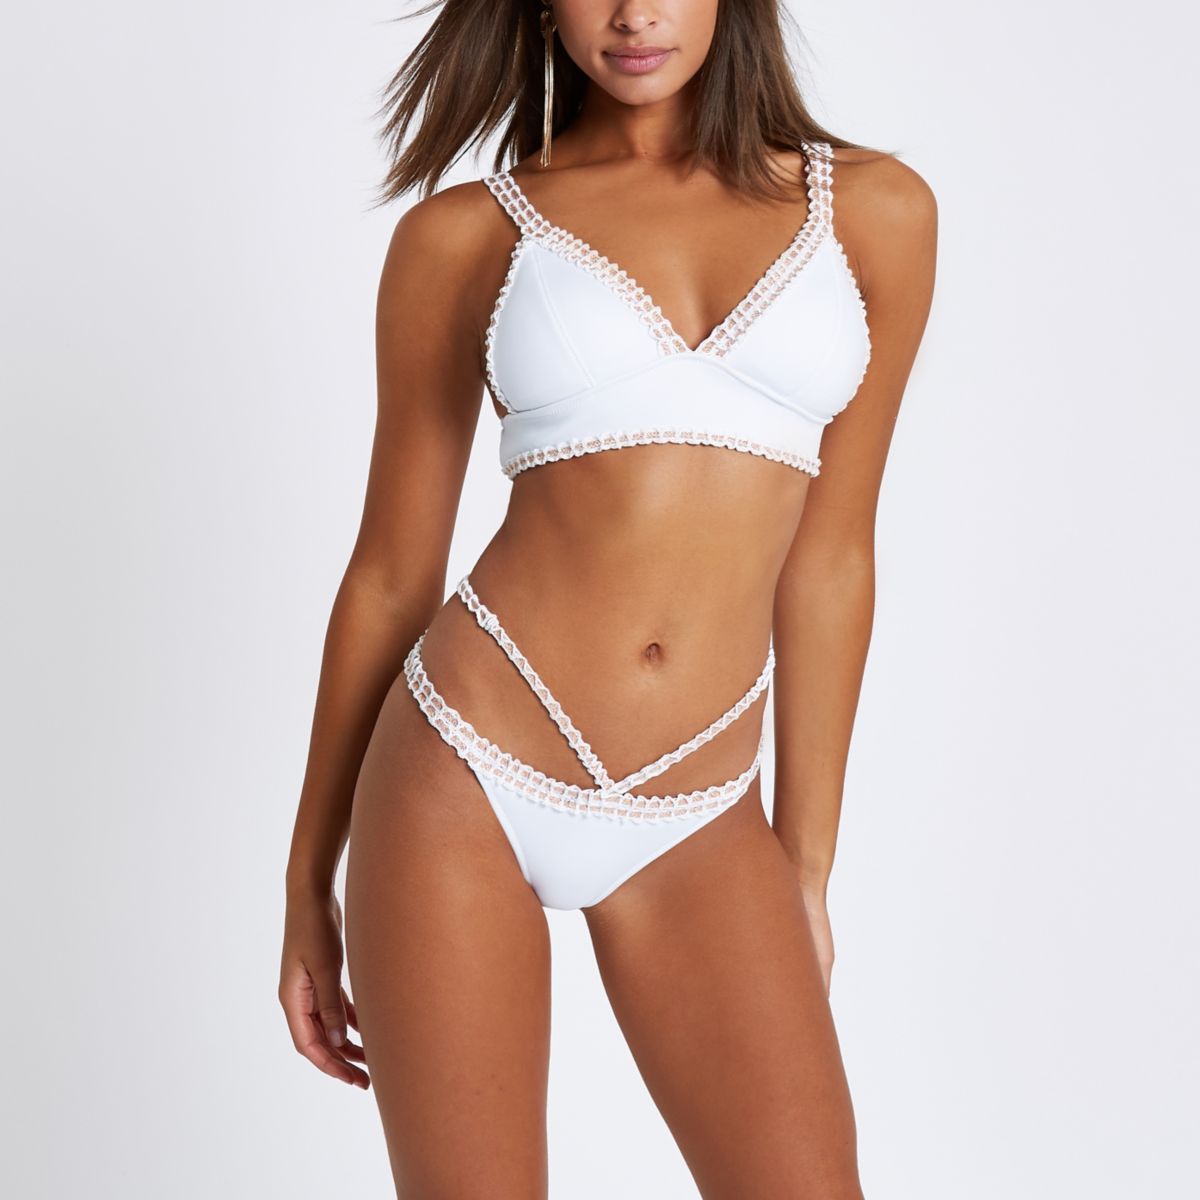 White strappy crochet high leg bikini bottoms